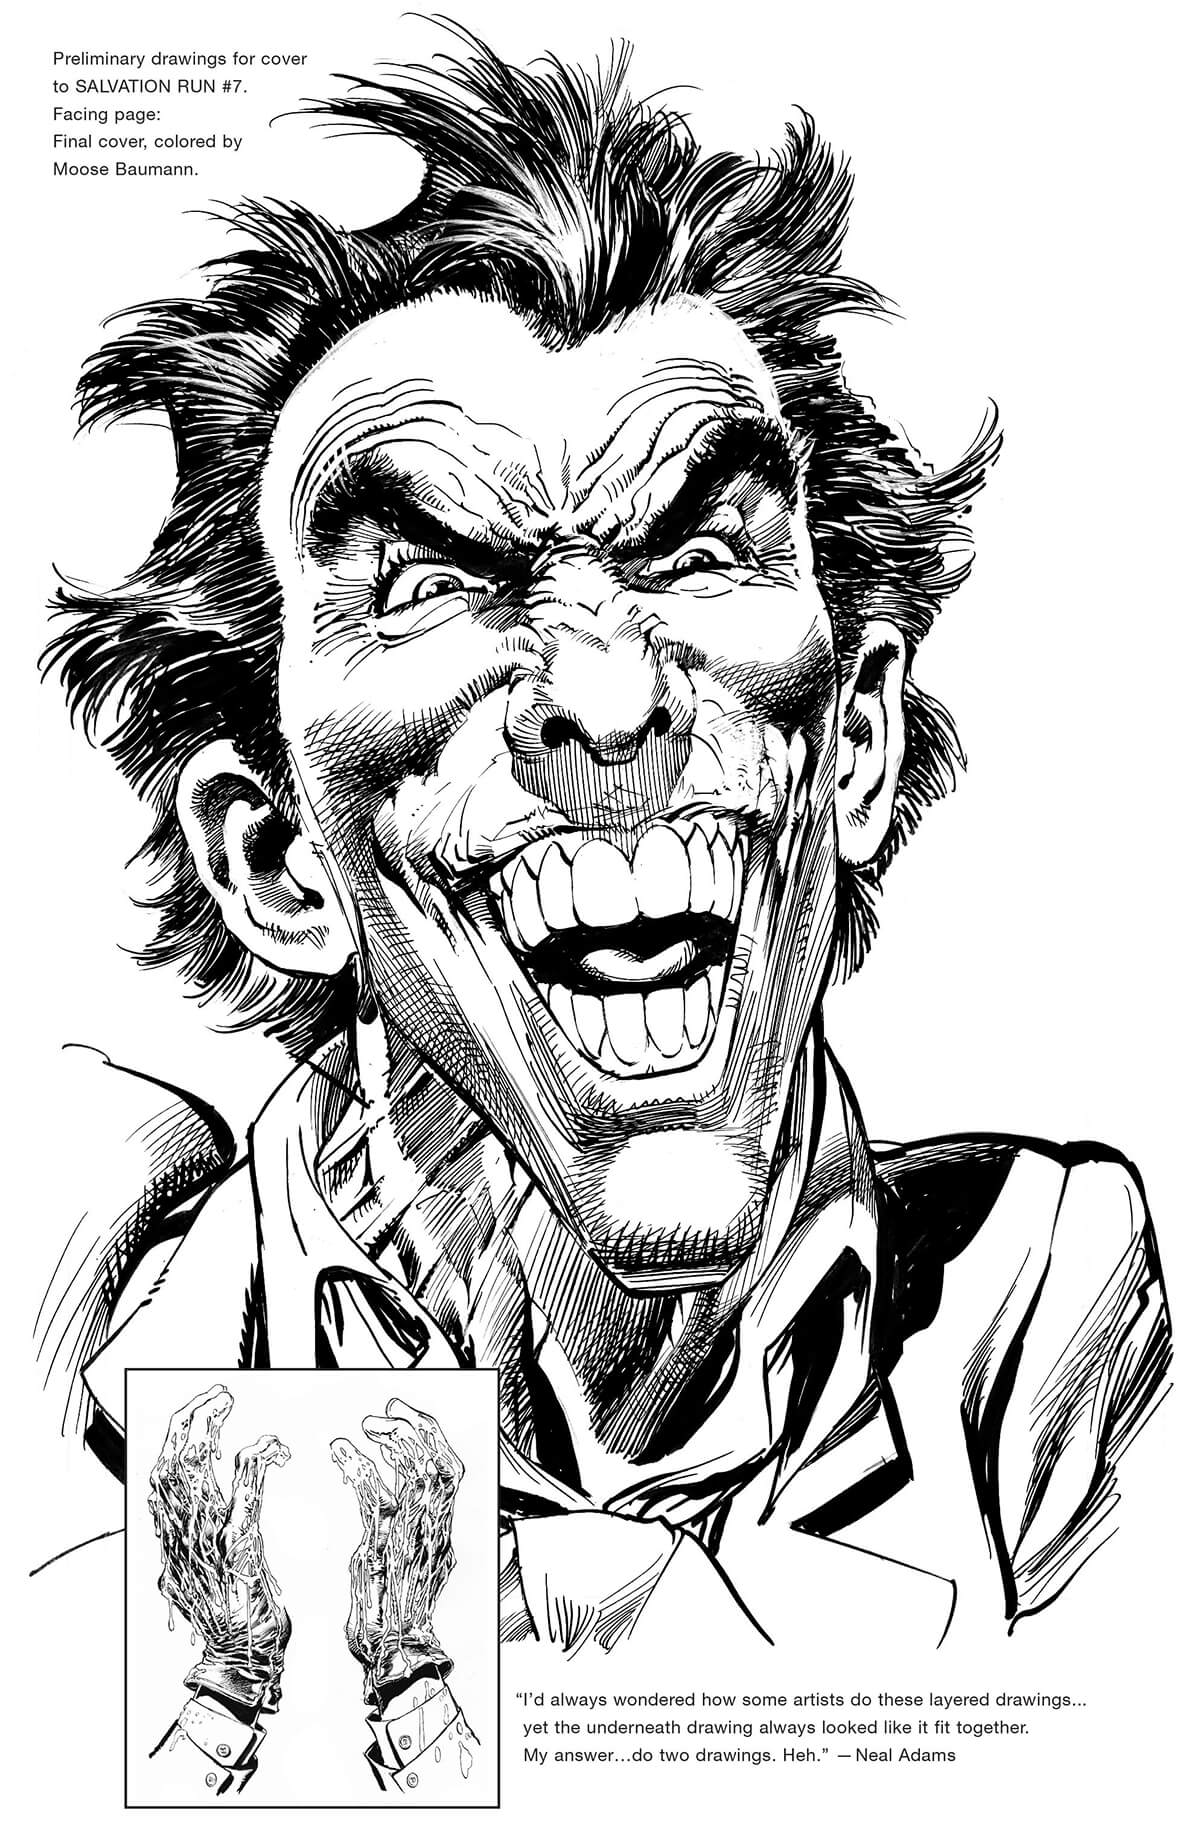 Salvation Run #7 Cover by Neal Adams